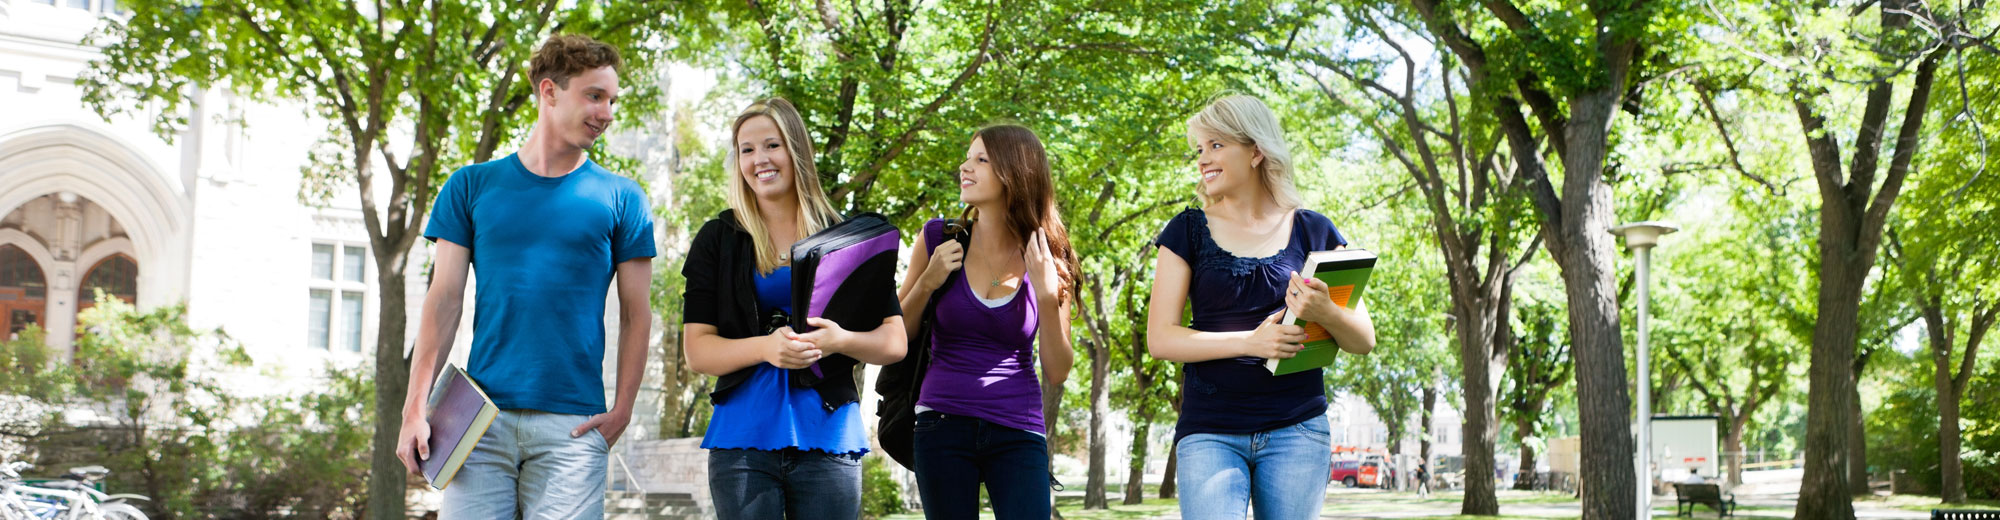 Group of college students walking